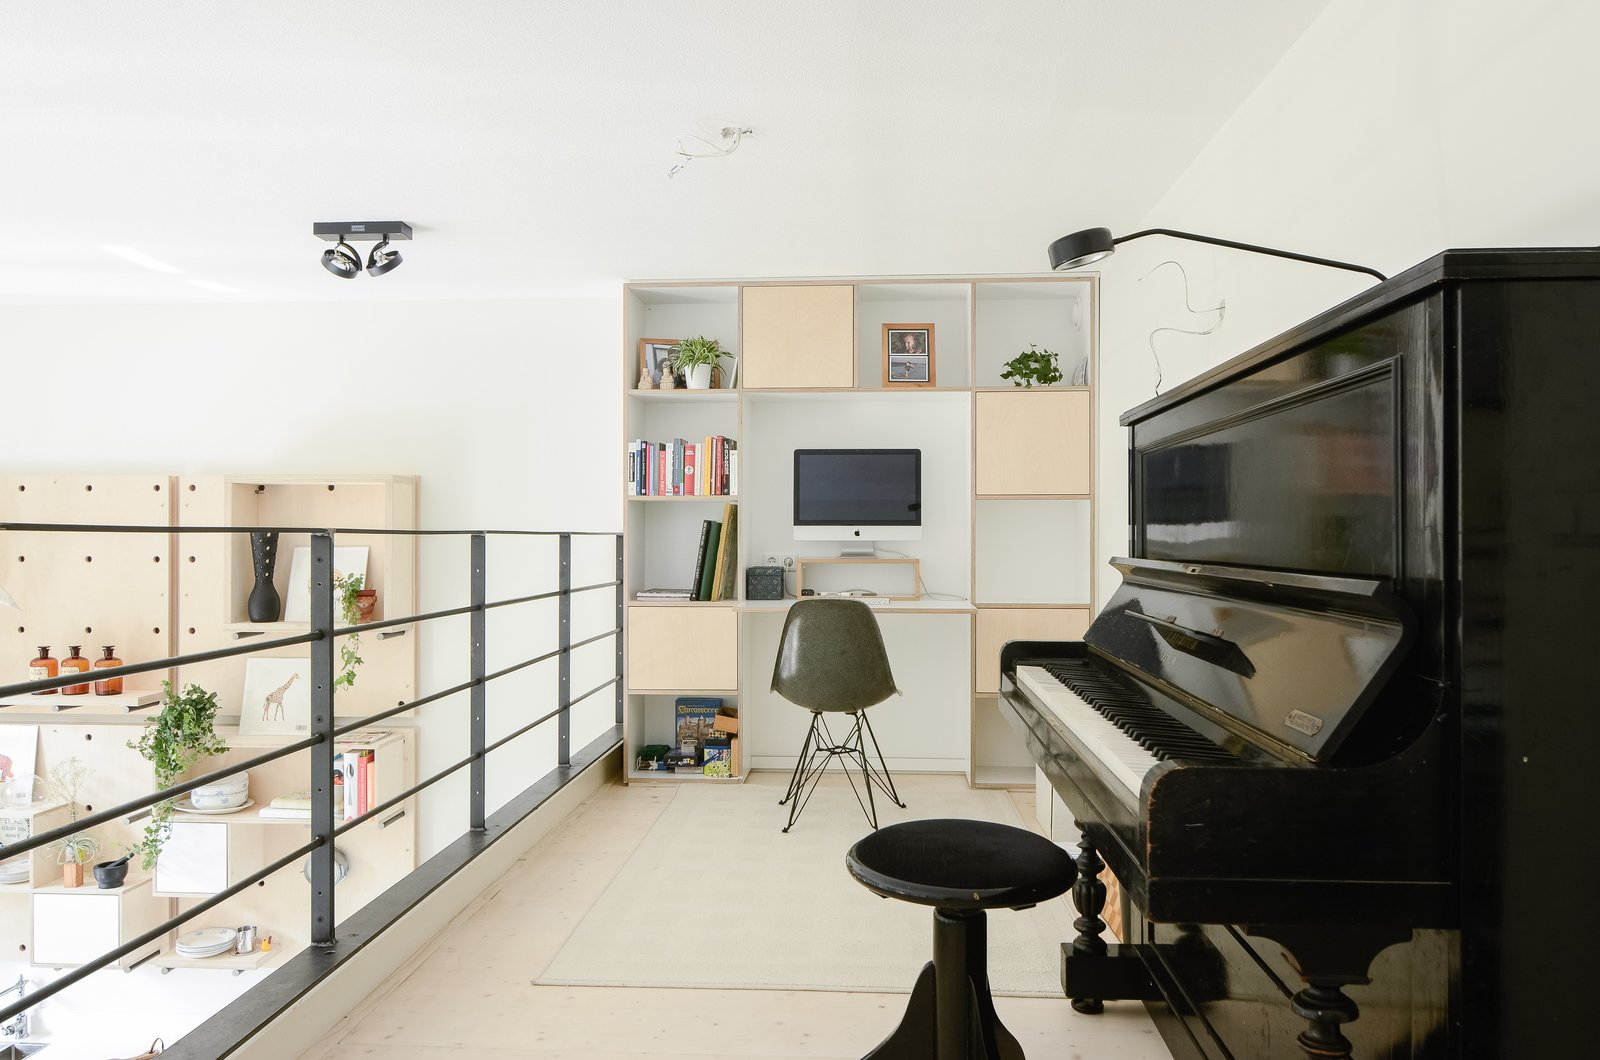 The loft addition afforded space for a home office and music area. The family chose to forego a dedicated office upstairs, instead prioritizing private bedrooms for each of the children. Shelving and a built-in desk anchor the loft's far wall.  Renovations from The Schoolhouse